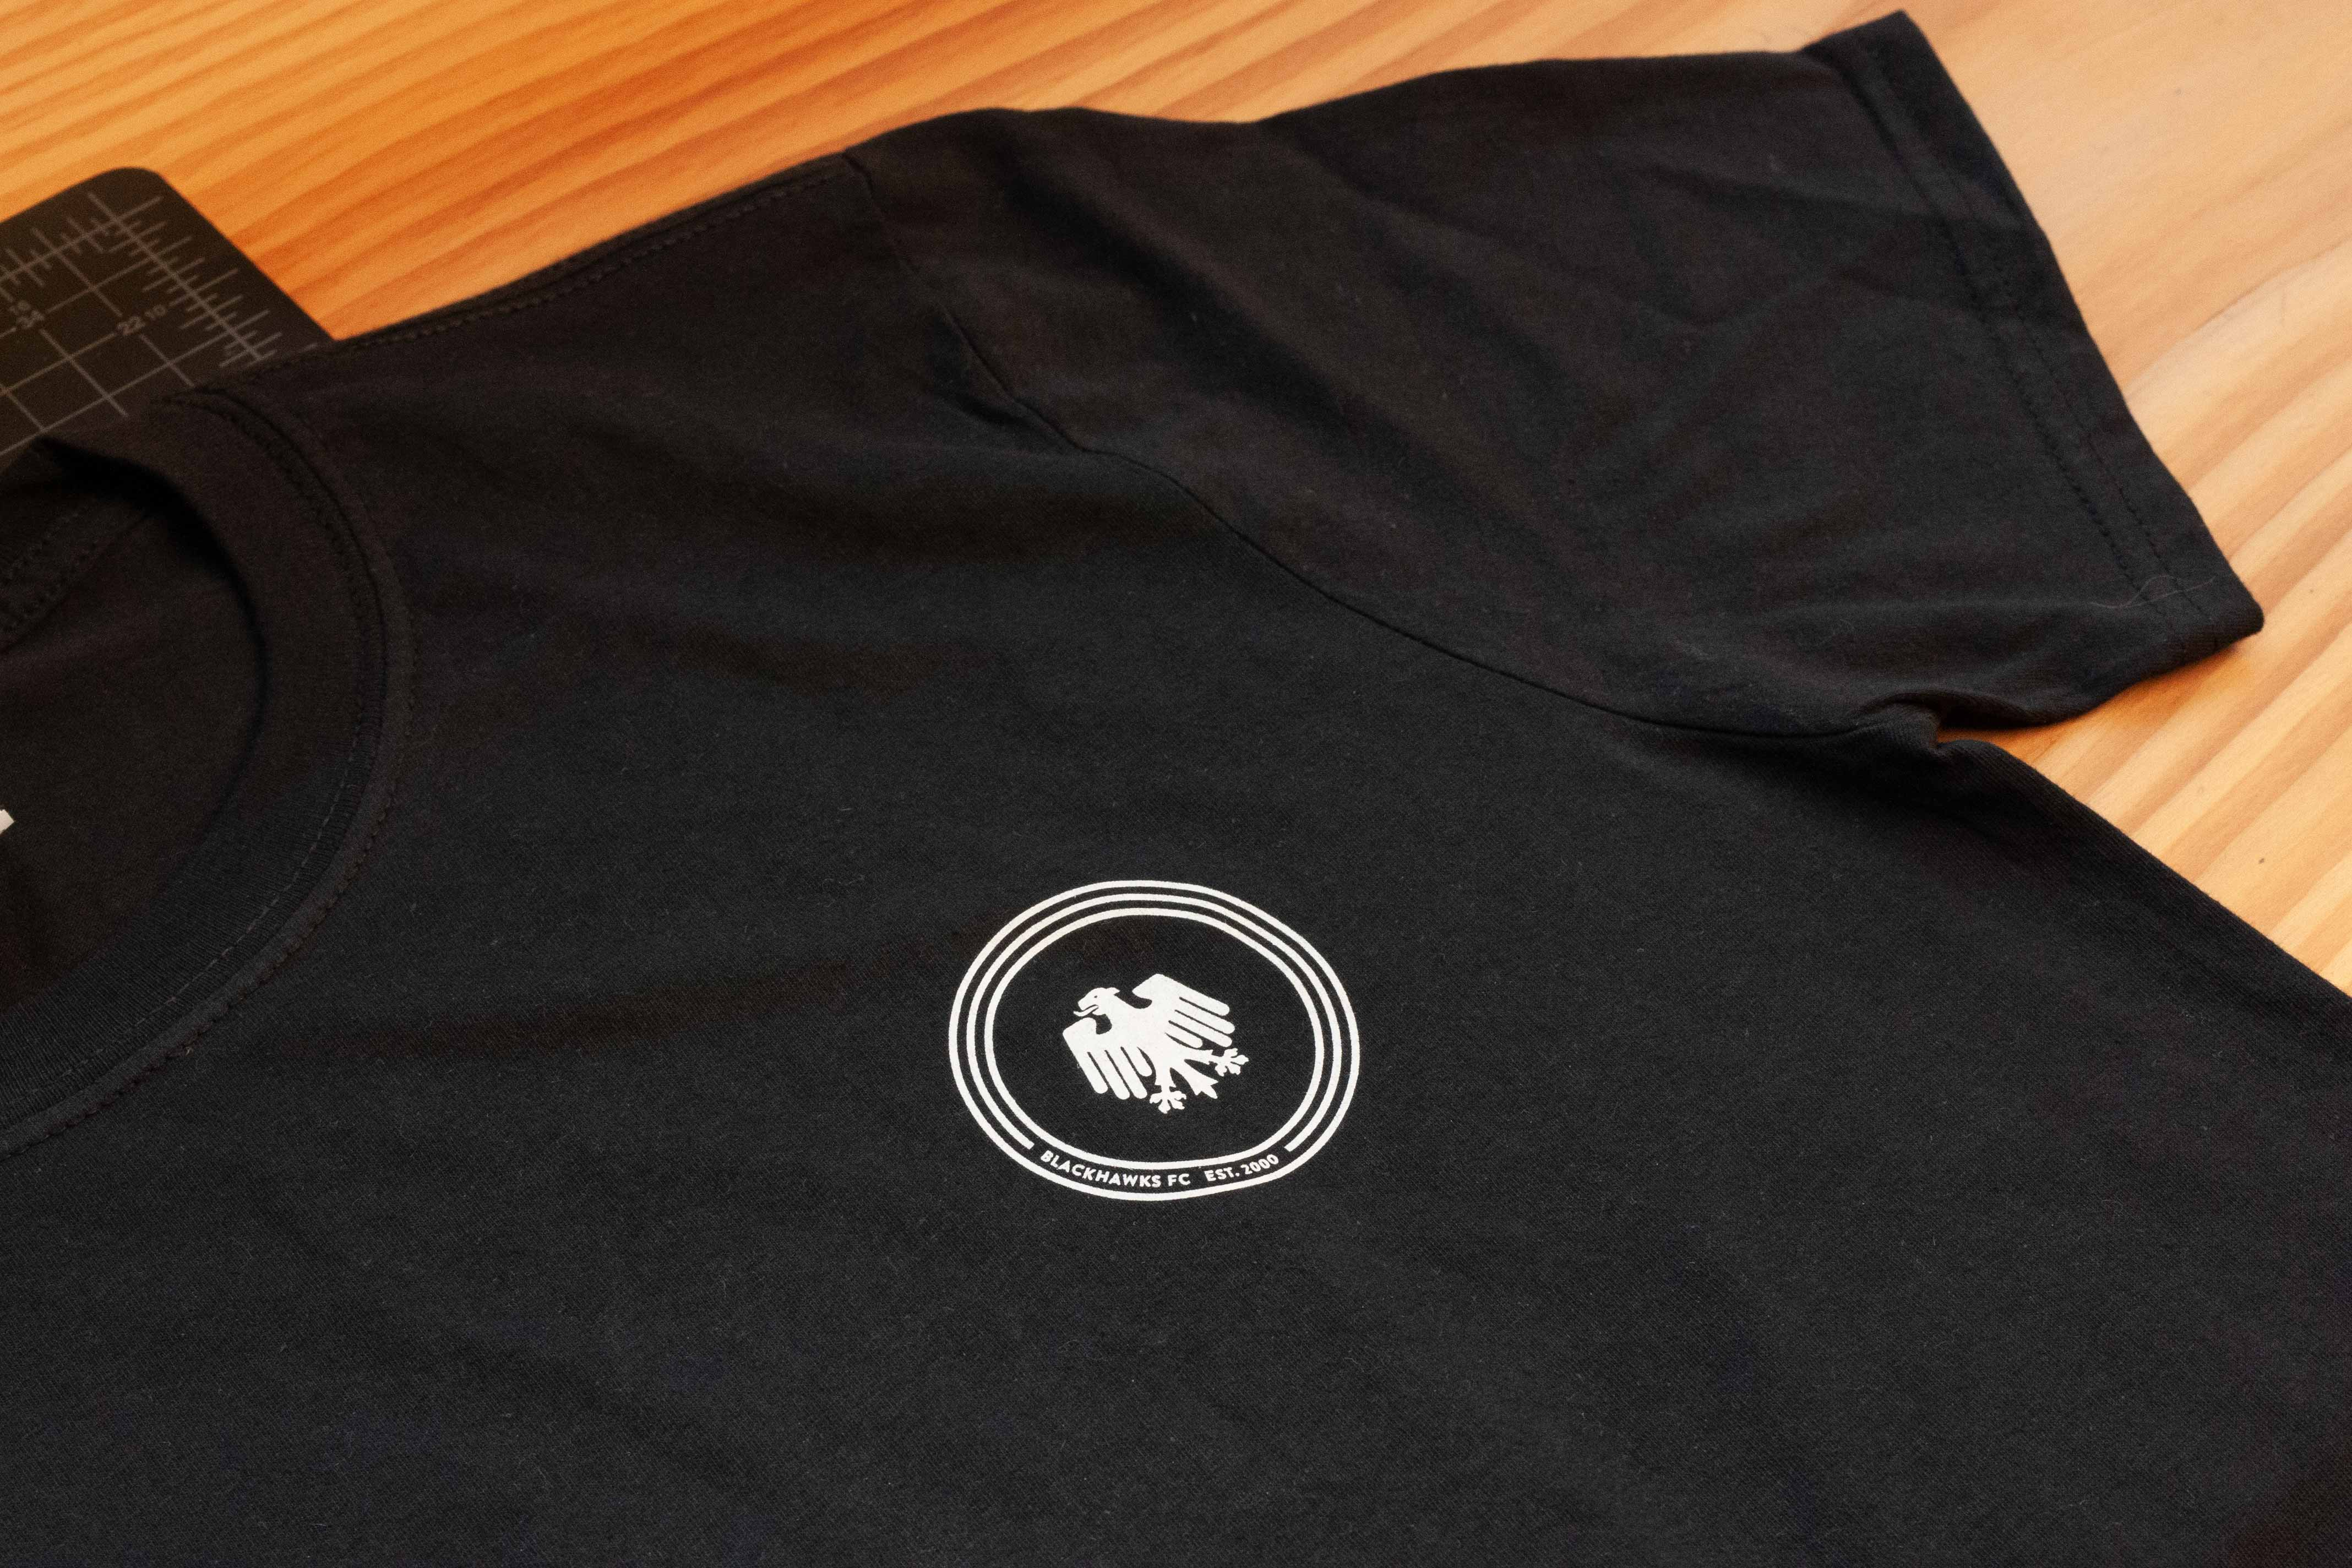 Blackhawks FC logo on black heather shirt — by Yagnyuk.